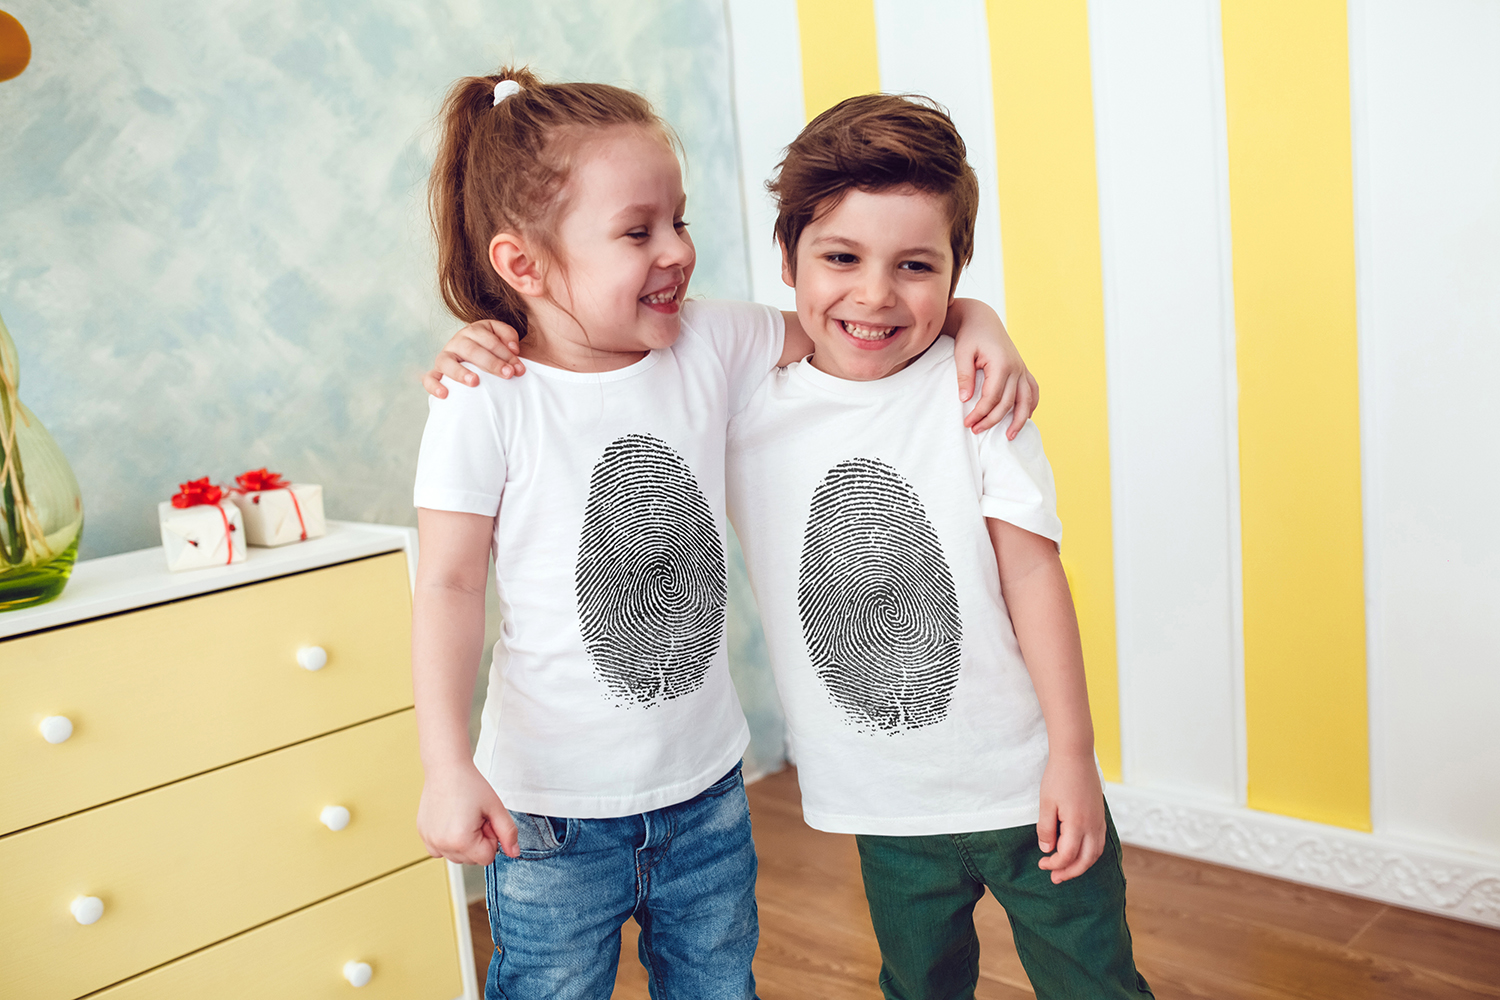 Kids T-Shirt Mock-Up Vol.3 2017 example image 11